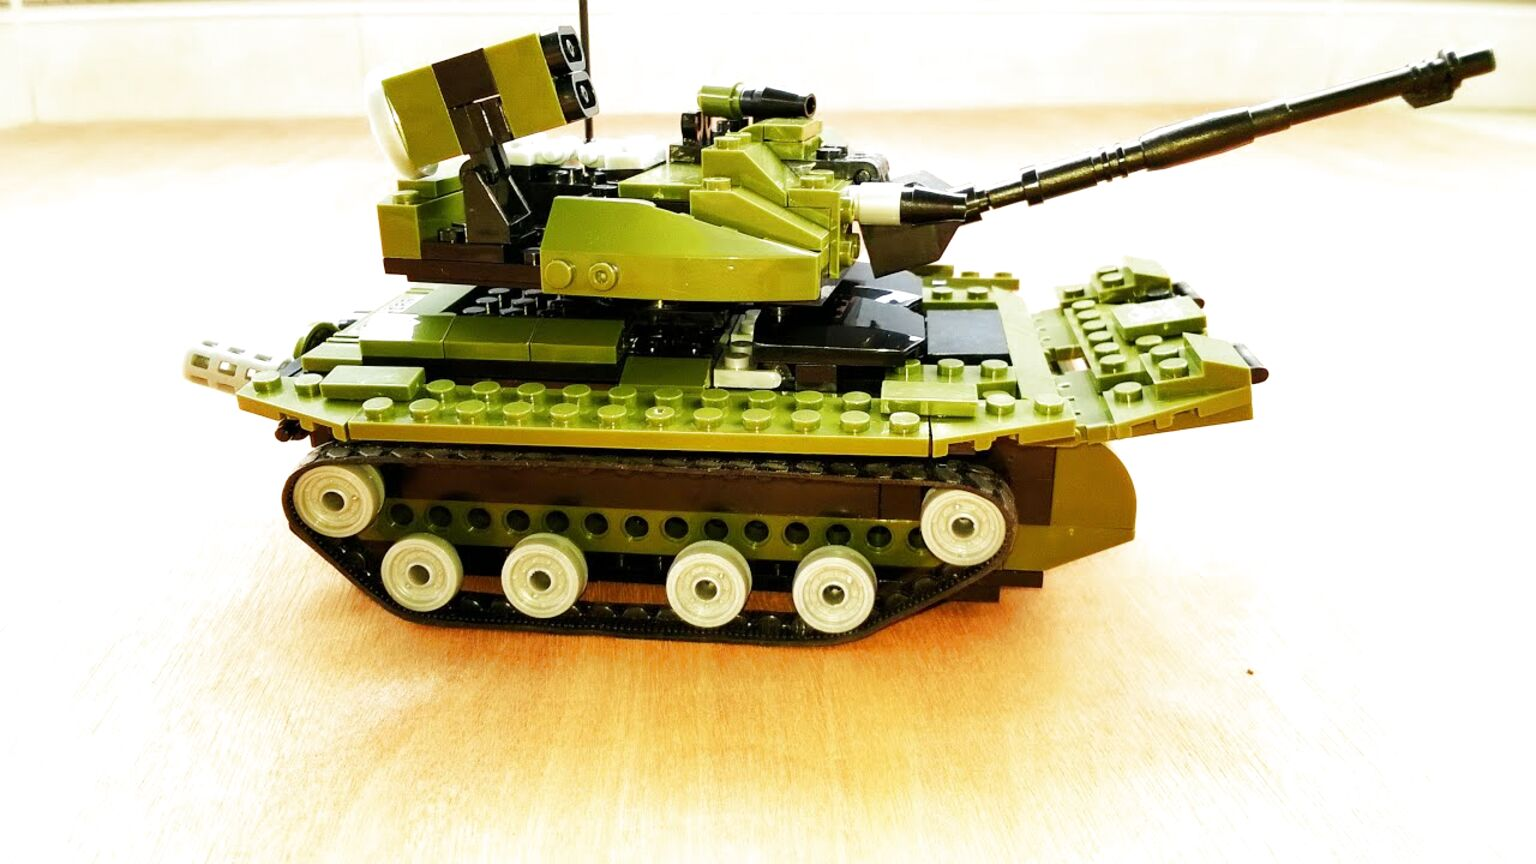 U Weapons Lego MOC 596pcs WW2 Army Soldiers And Military Tanks US Army Red Army